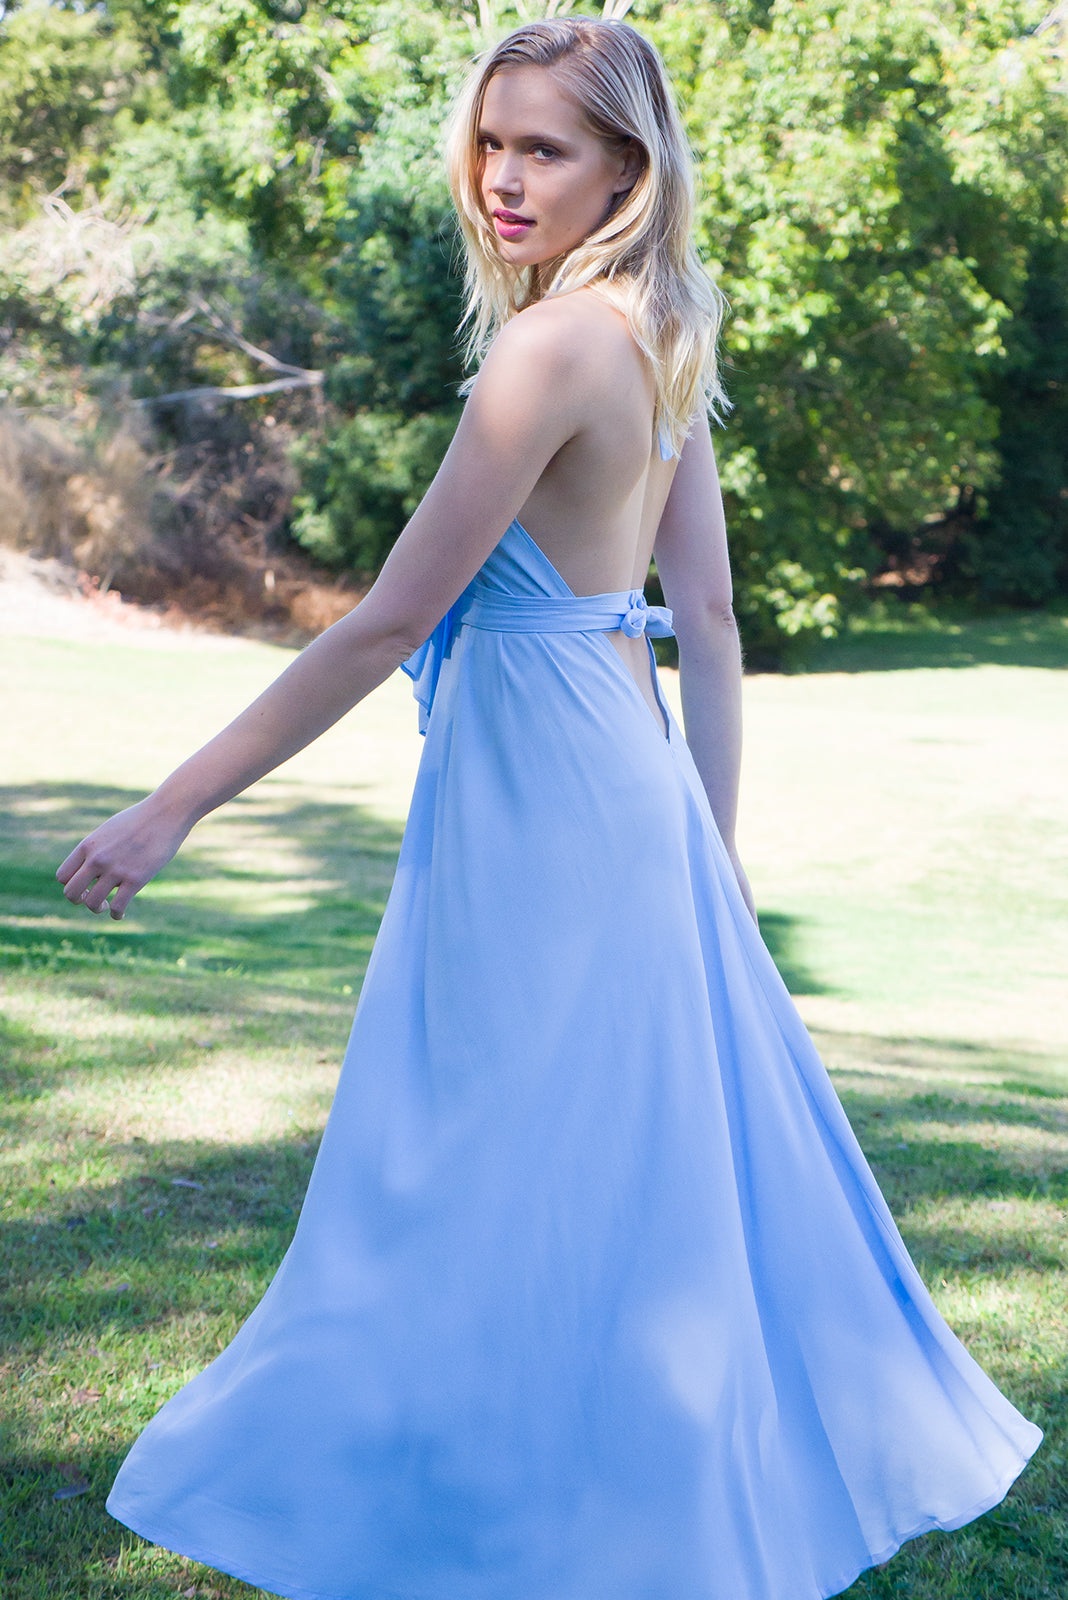 Belle Starr Maxi Dress Backless Halter formal dress in cool ice blue moss crepe